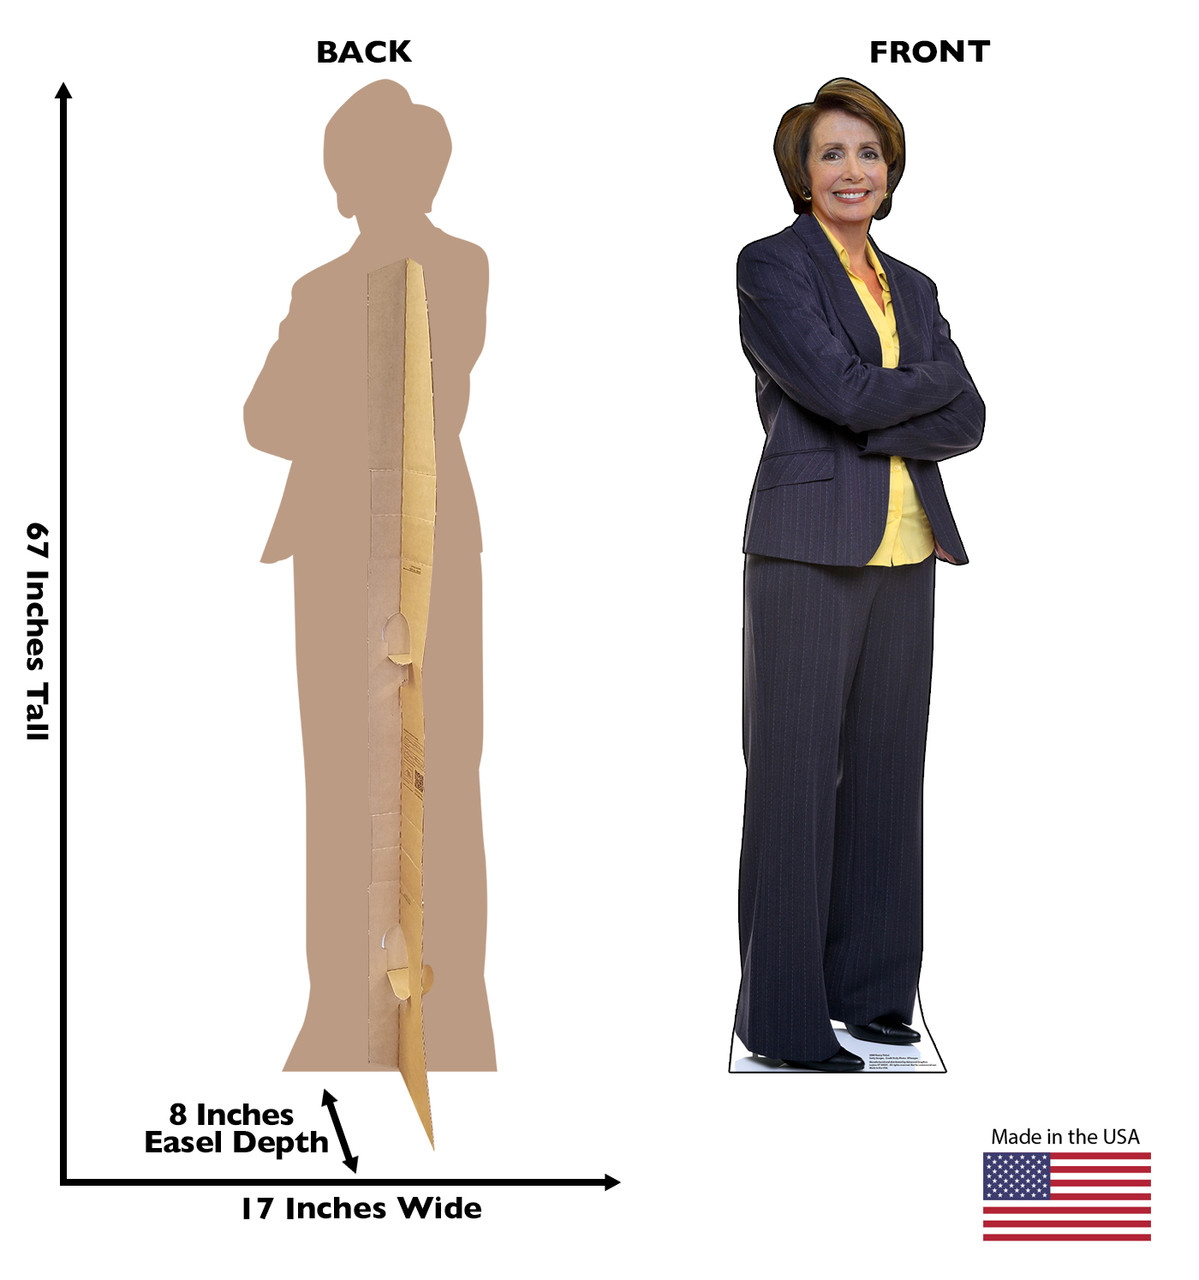 Life-size cardboard standee of Nancy Pelosi with back and front dimensions.